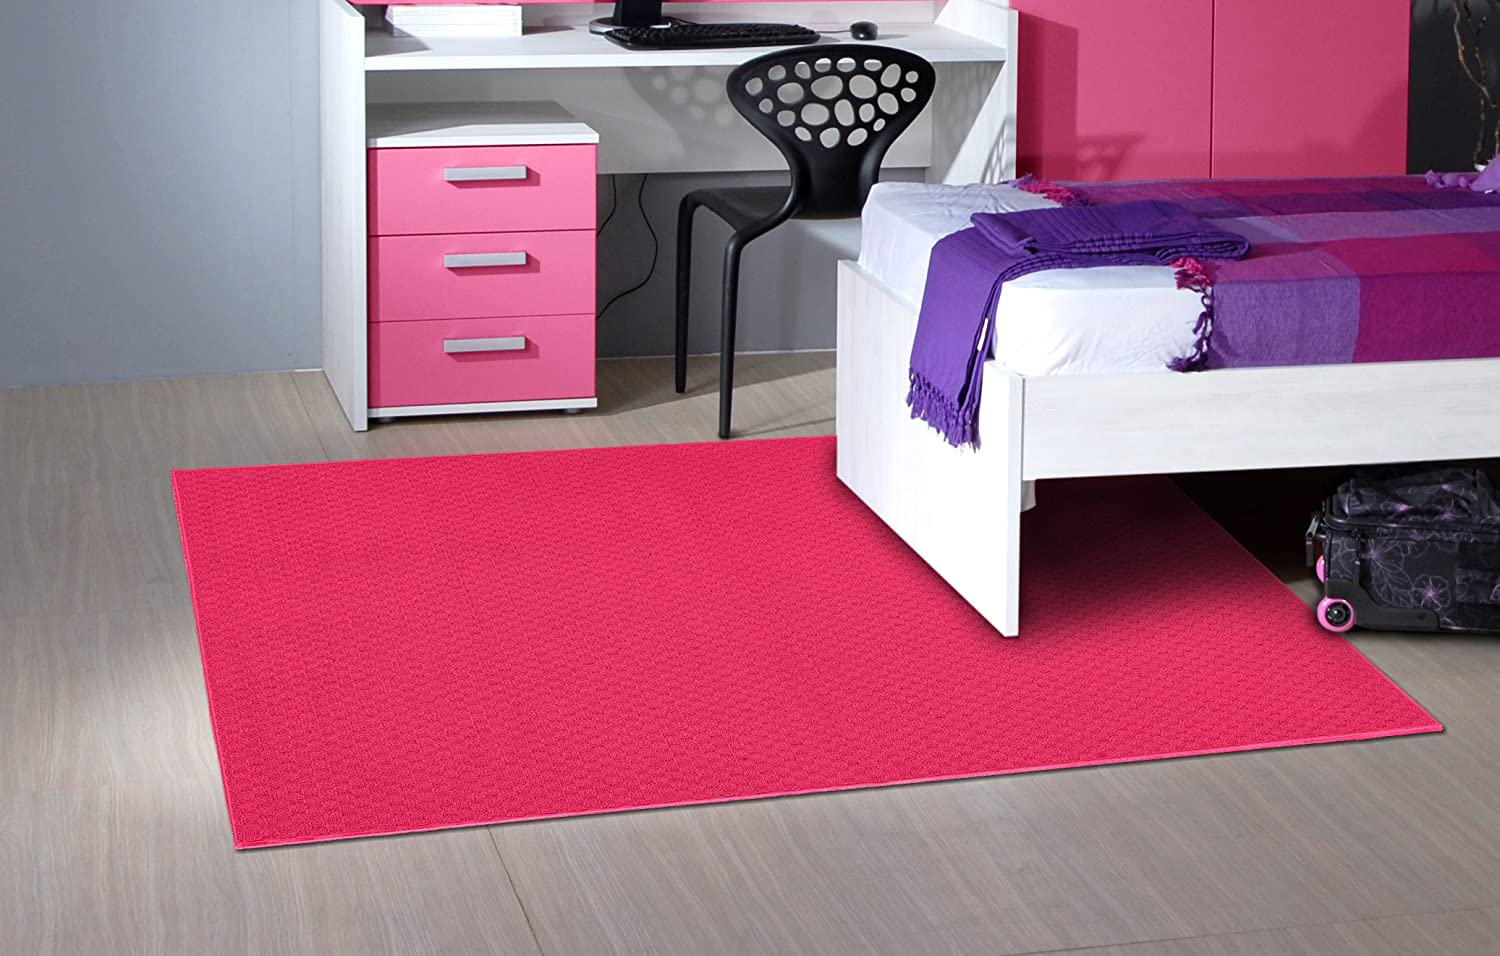 Garland Rug Town Square Area Rug, 4-Feet by 6-Feet, Pink